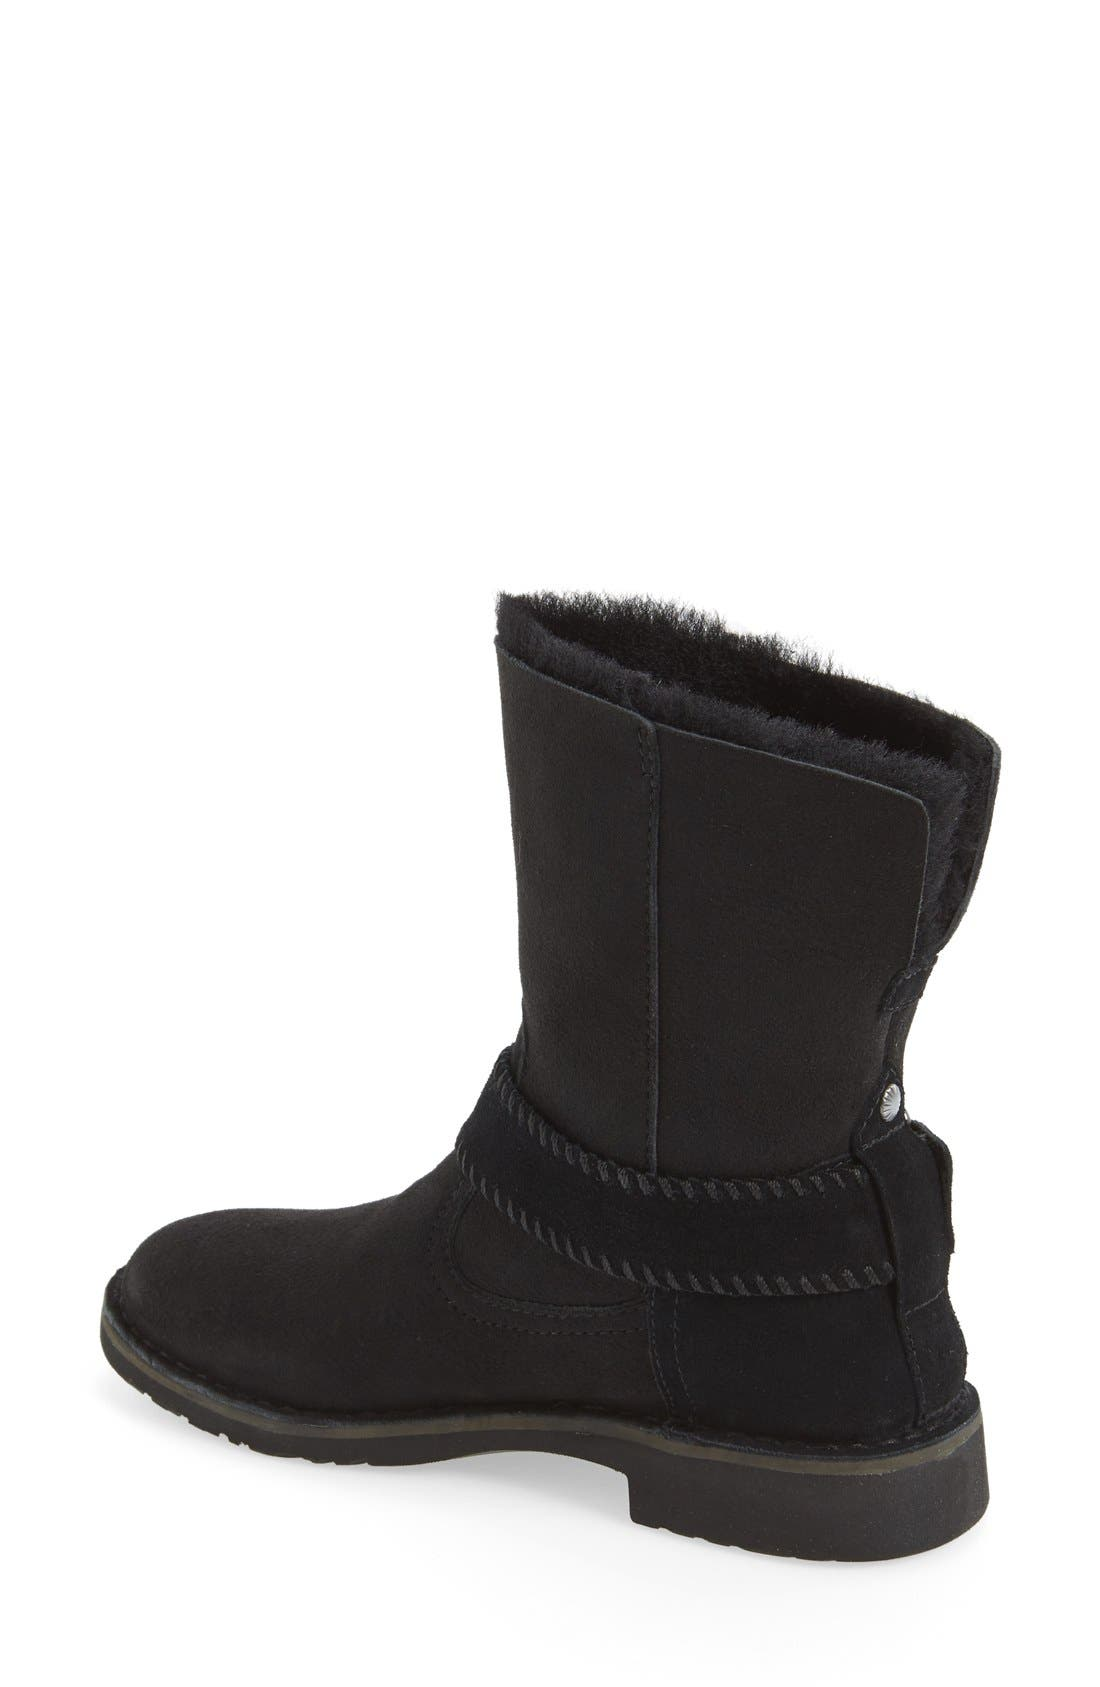 Cedric Water Resistant Boot,                             Alternate thumbnail 2, color,                             001